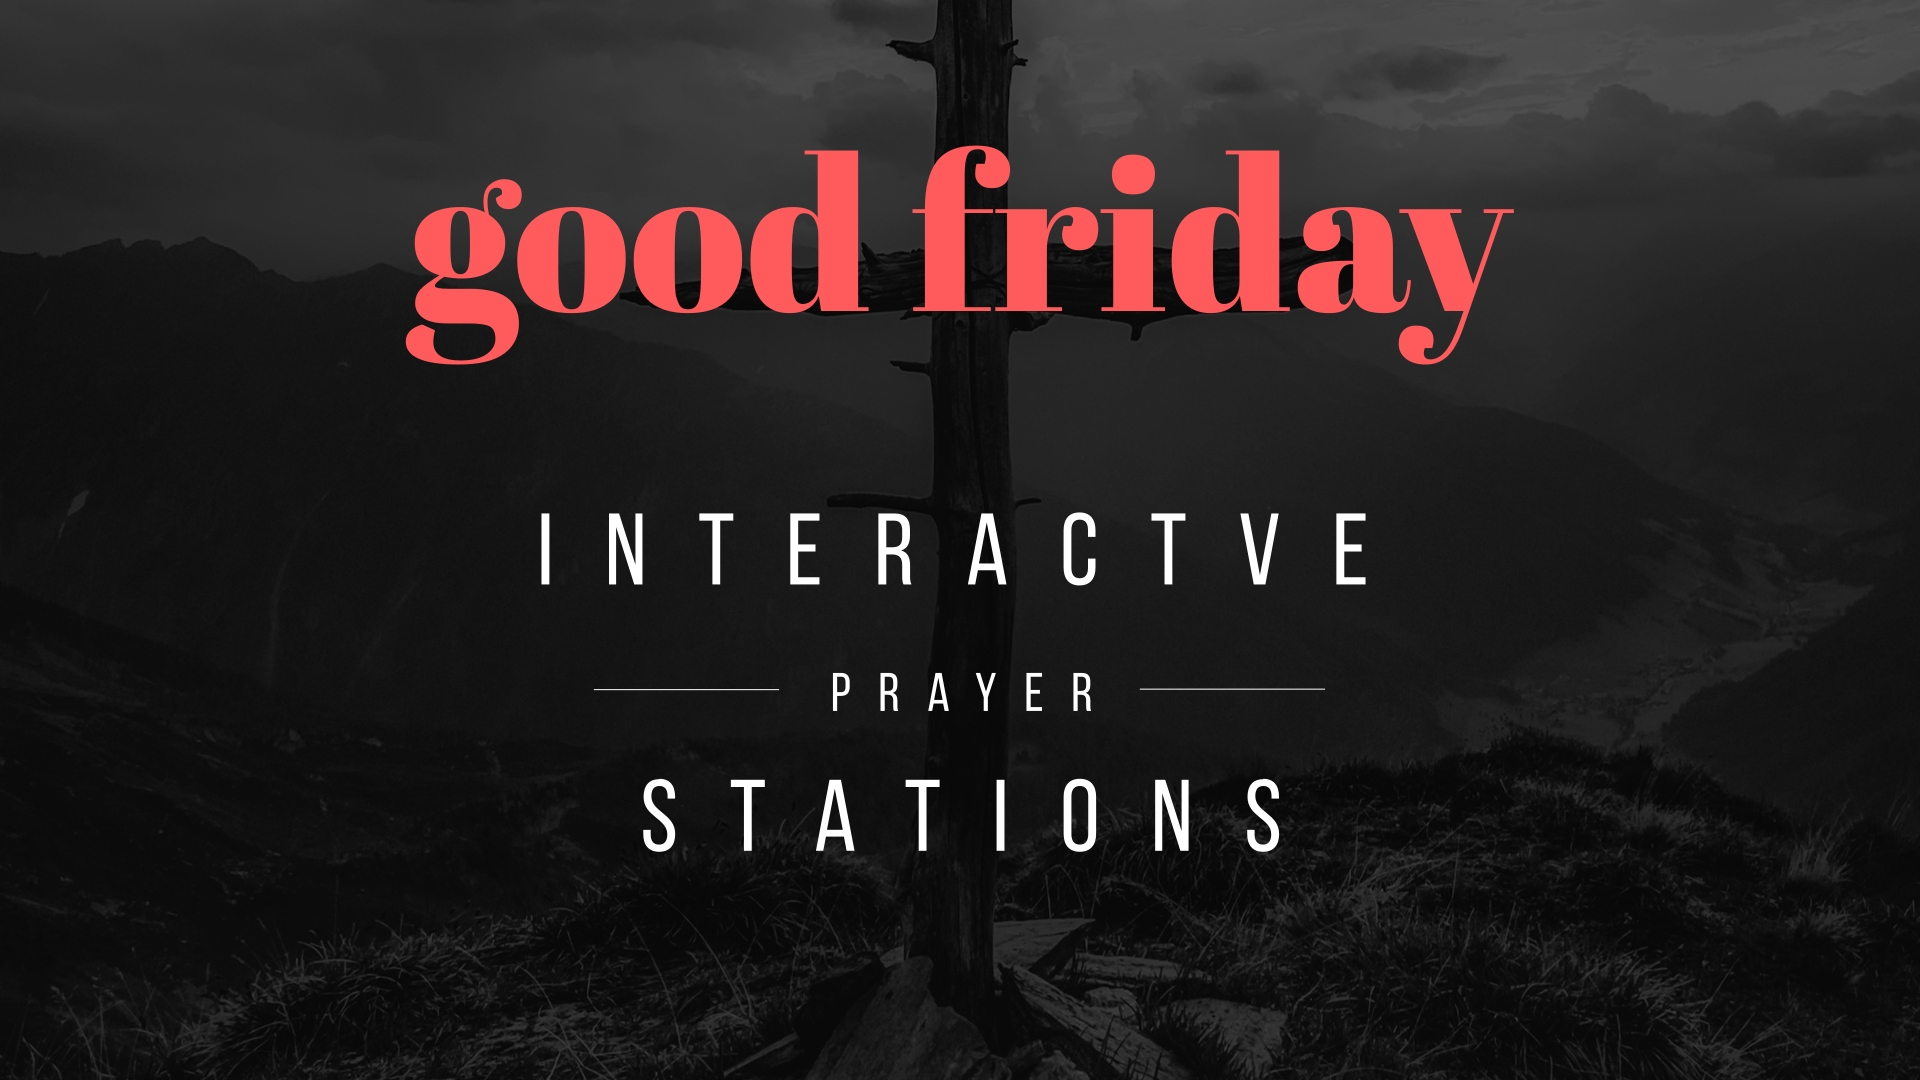 goodfridayprayer.jpg